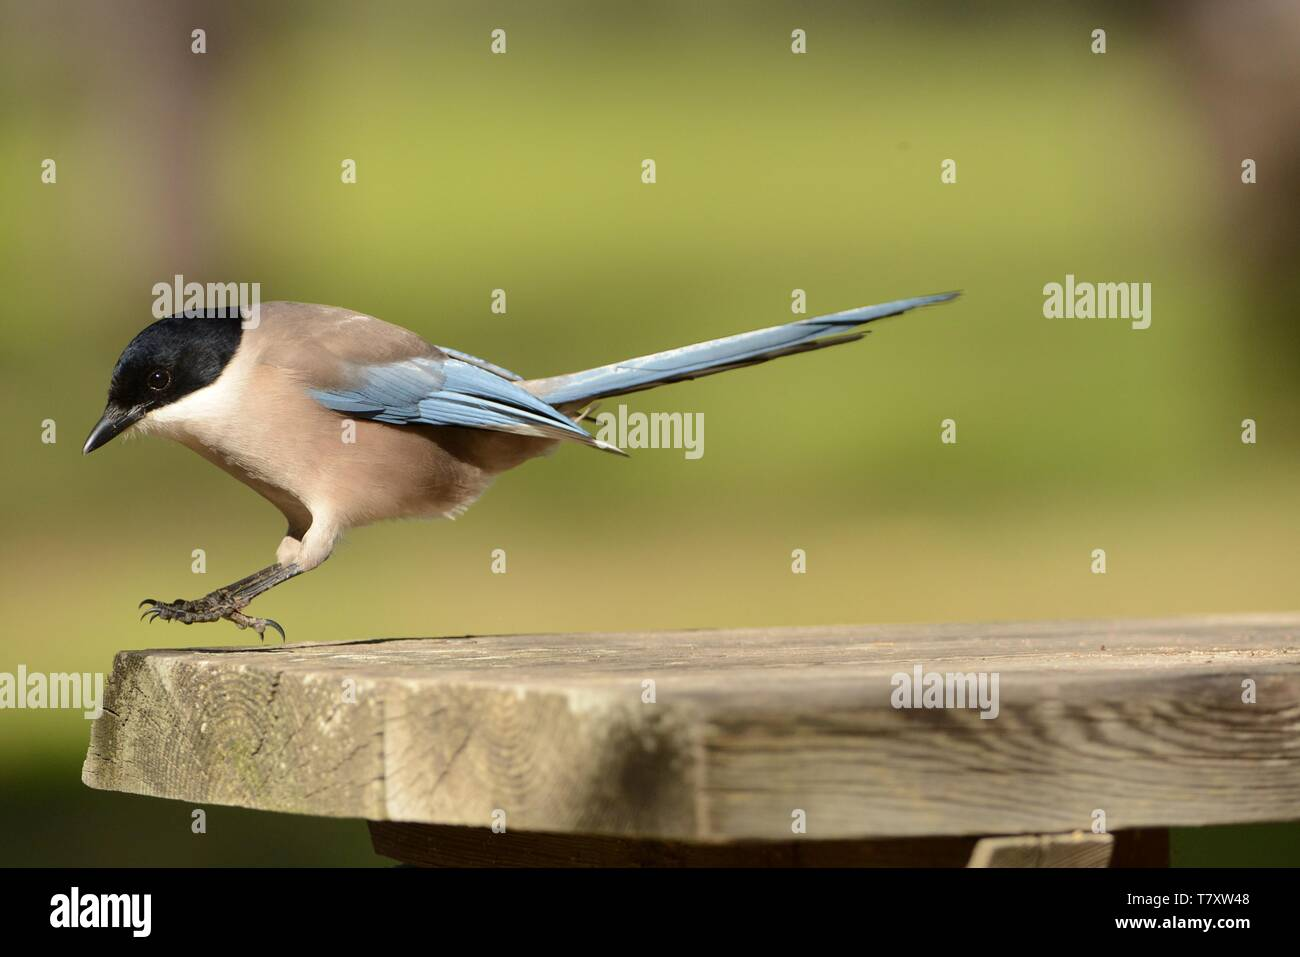 Azure-winged Magpie (Cyanopica cyanus) searching for the food. - Stock Image